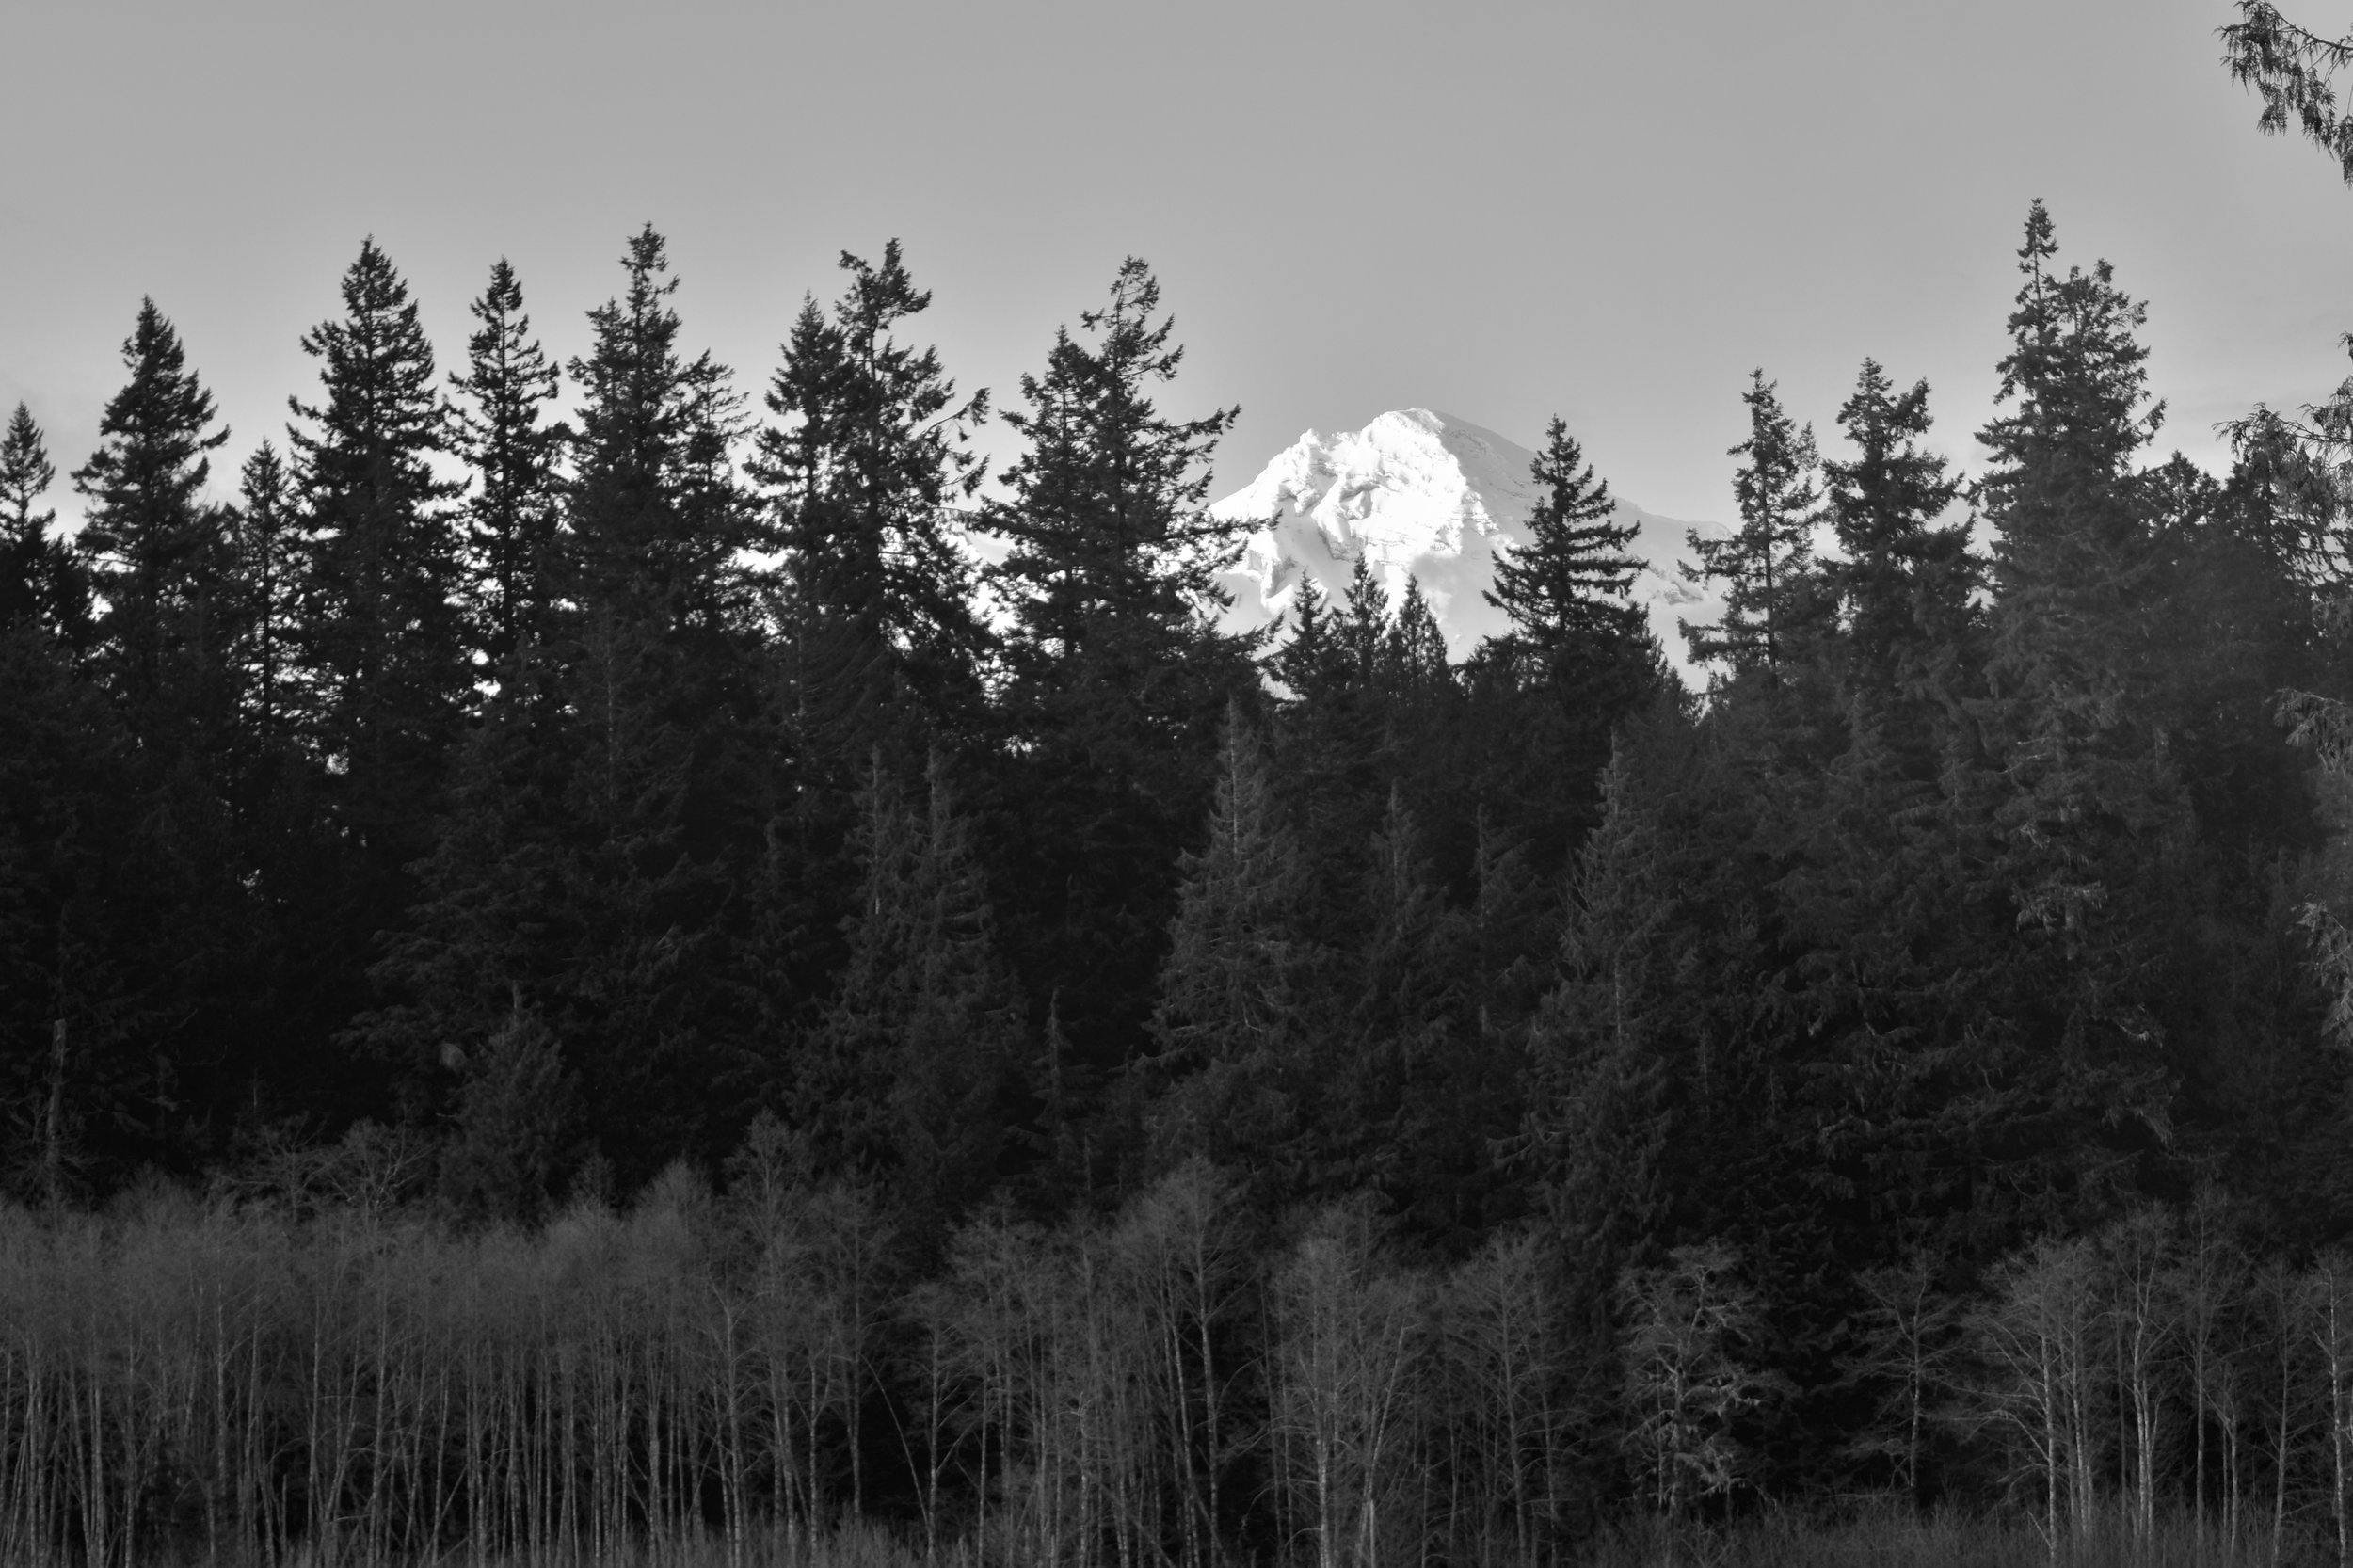 Rainier from south of the Nisqually river